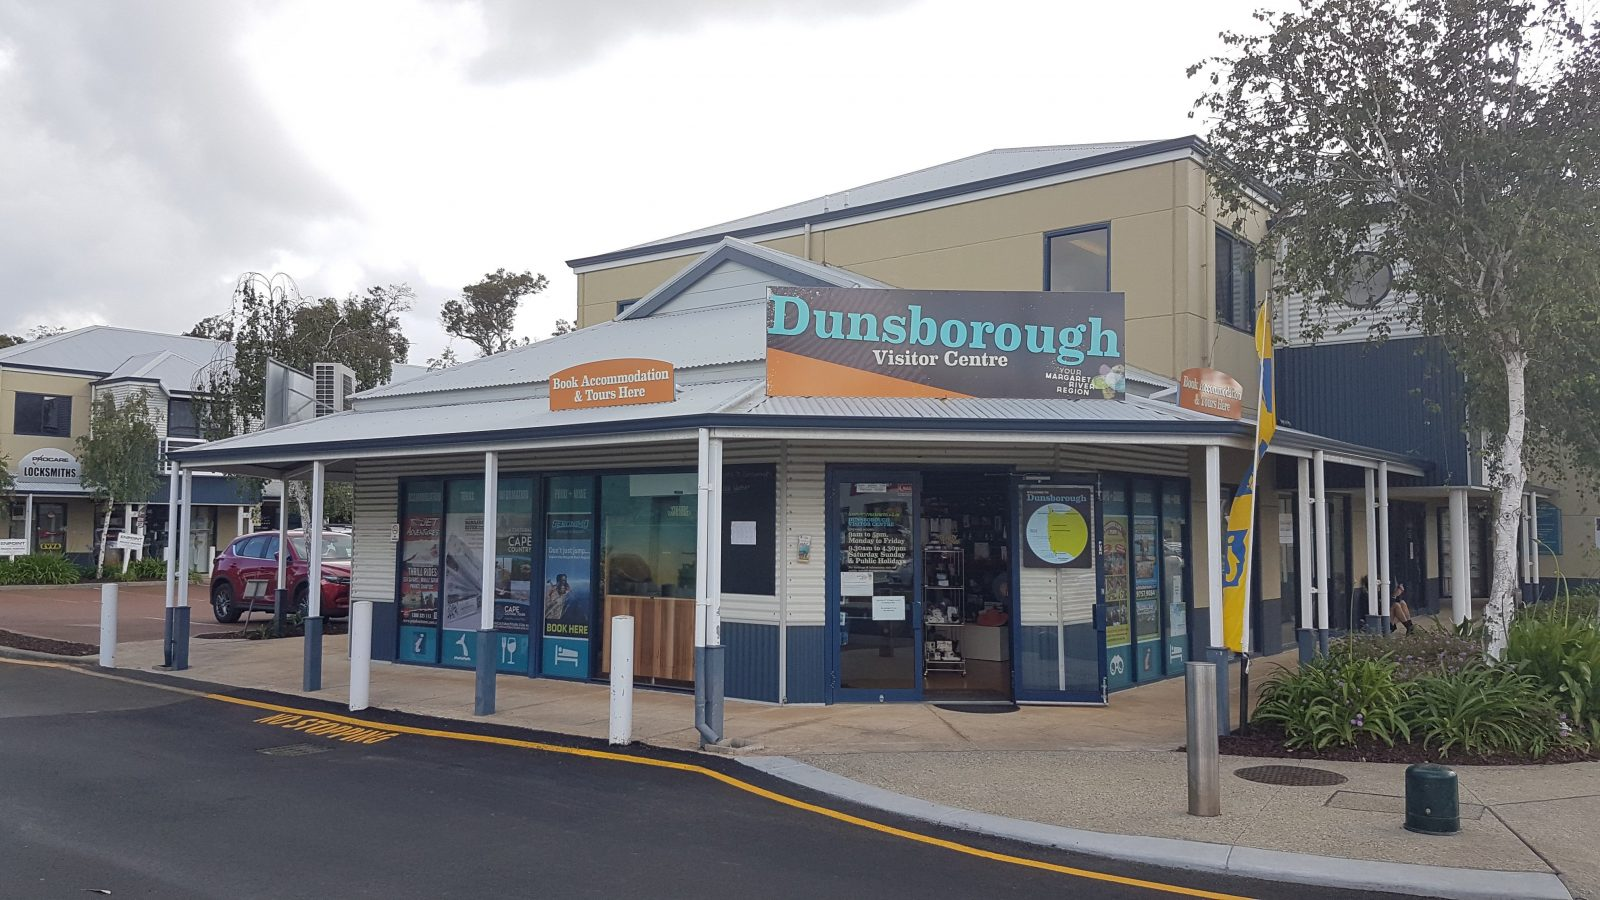 Dunsborough Visitor Centre, Dunsborough, Western Australia